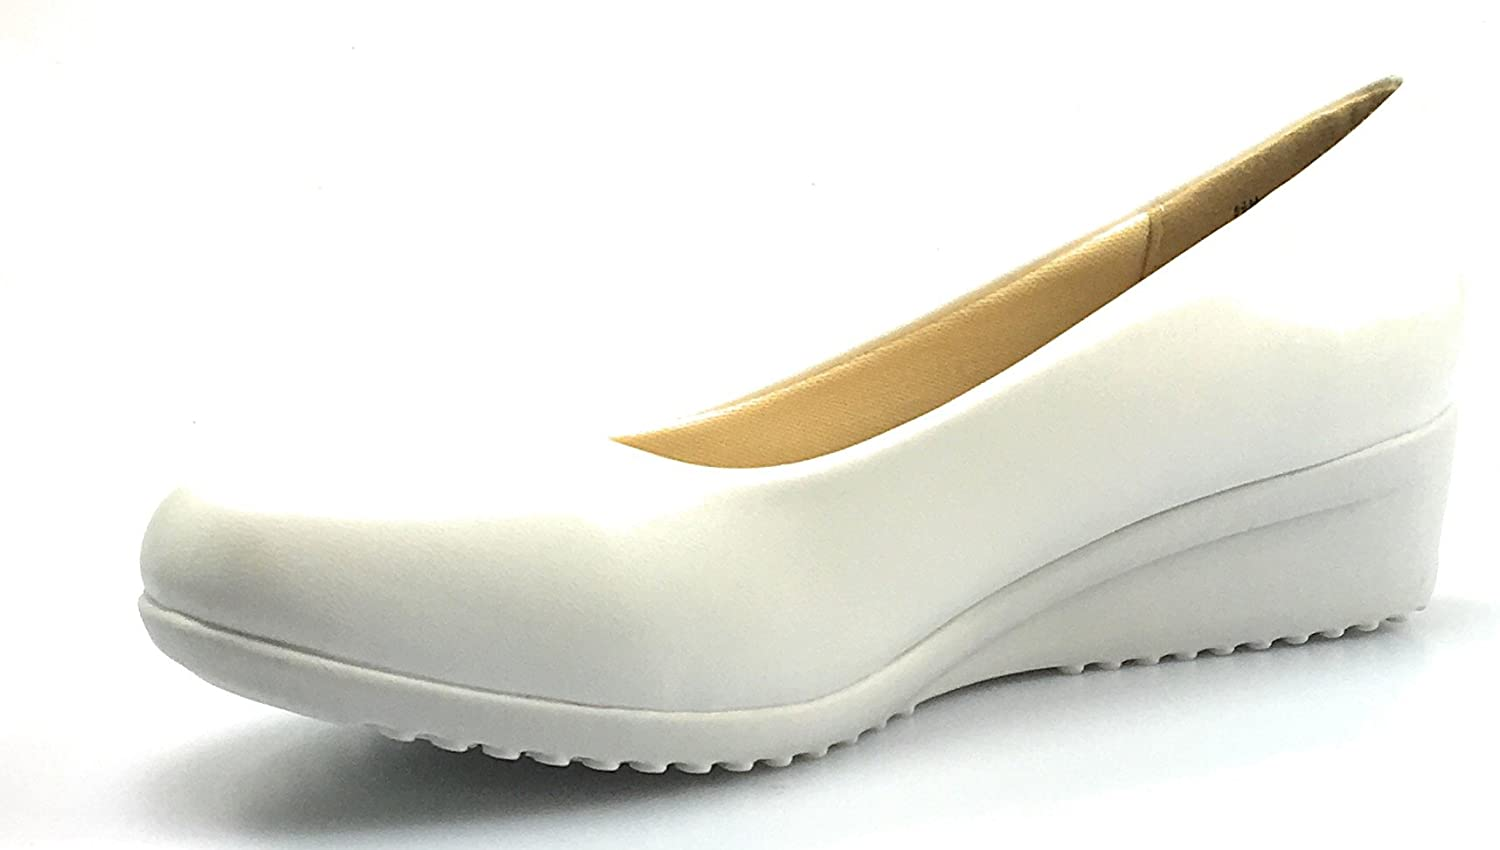 Pierre Dumas Women's Limited time trial Ranking integrated 1st place price Relax-6 Loafer Slip-On Leather Vegan